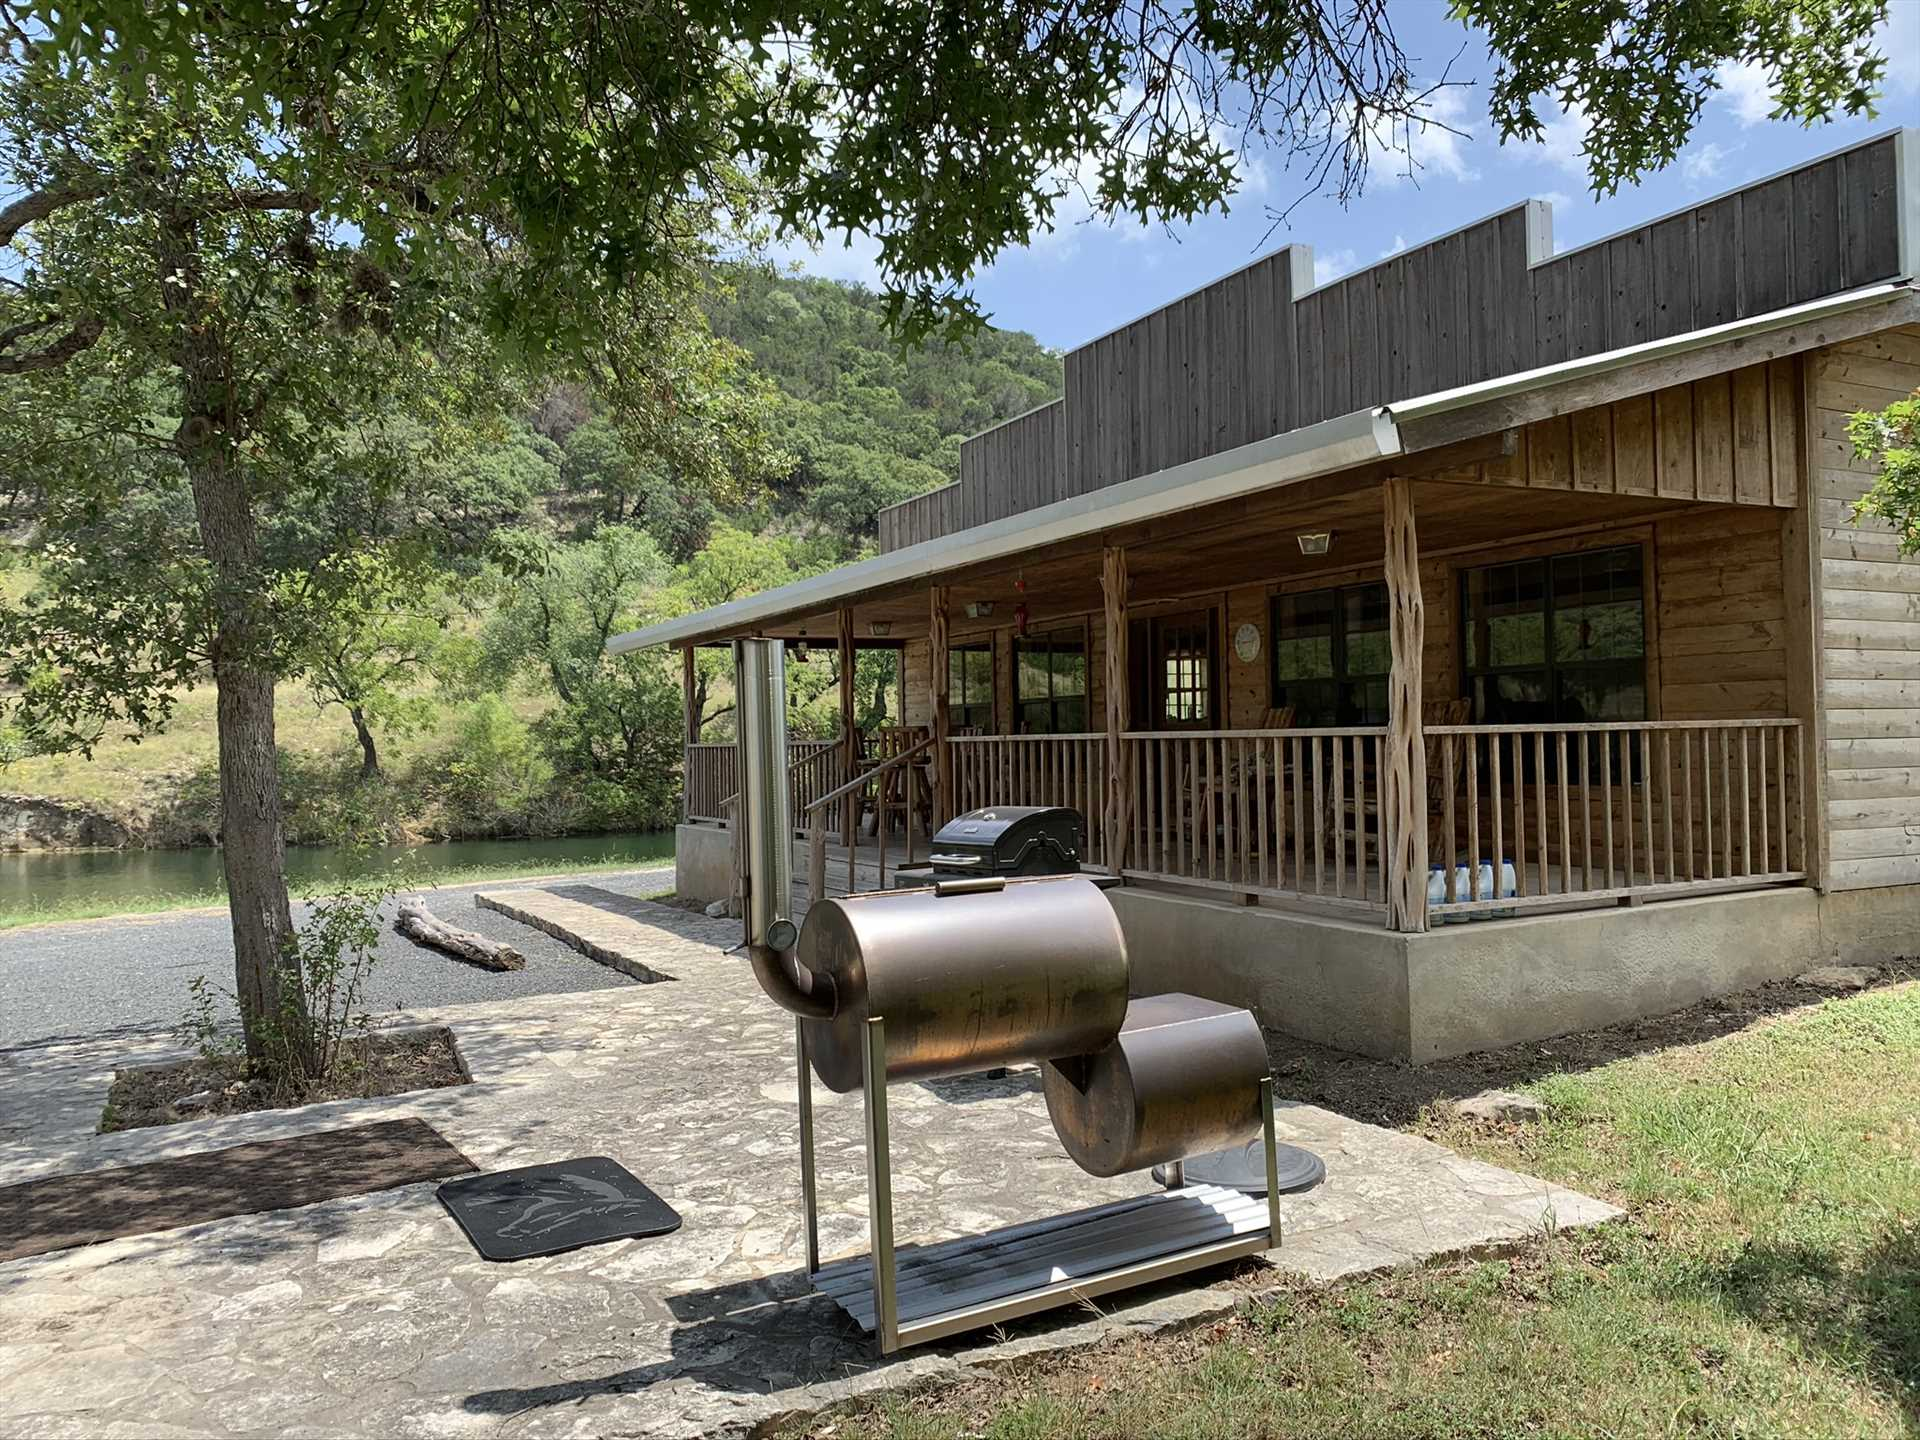 There's a charcoal grill here, AND...for those BBQ masters who want to really show off, there's a smoker, too!